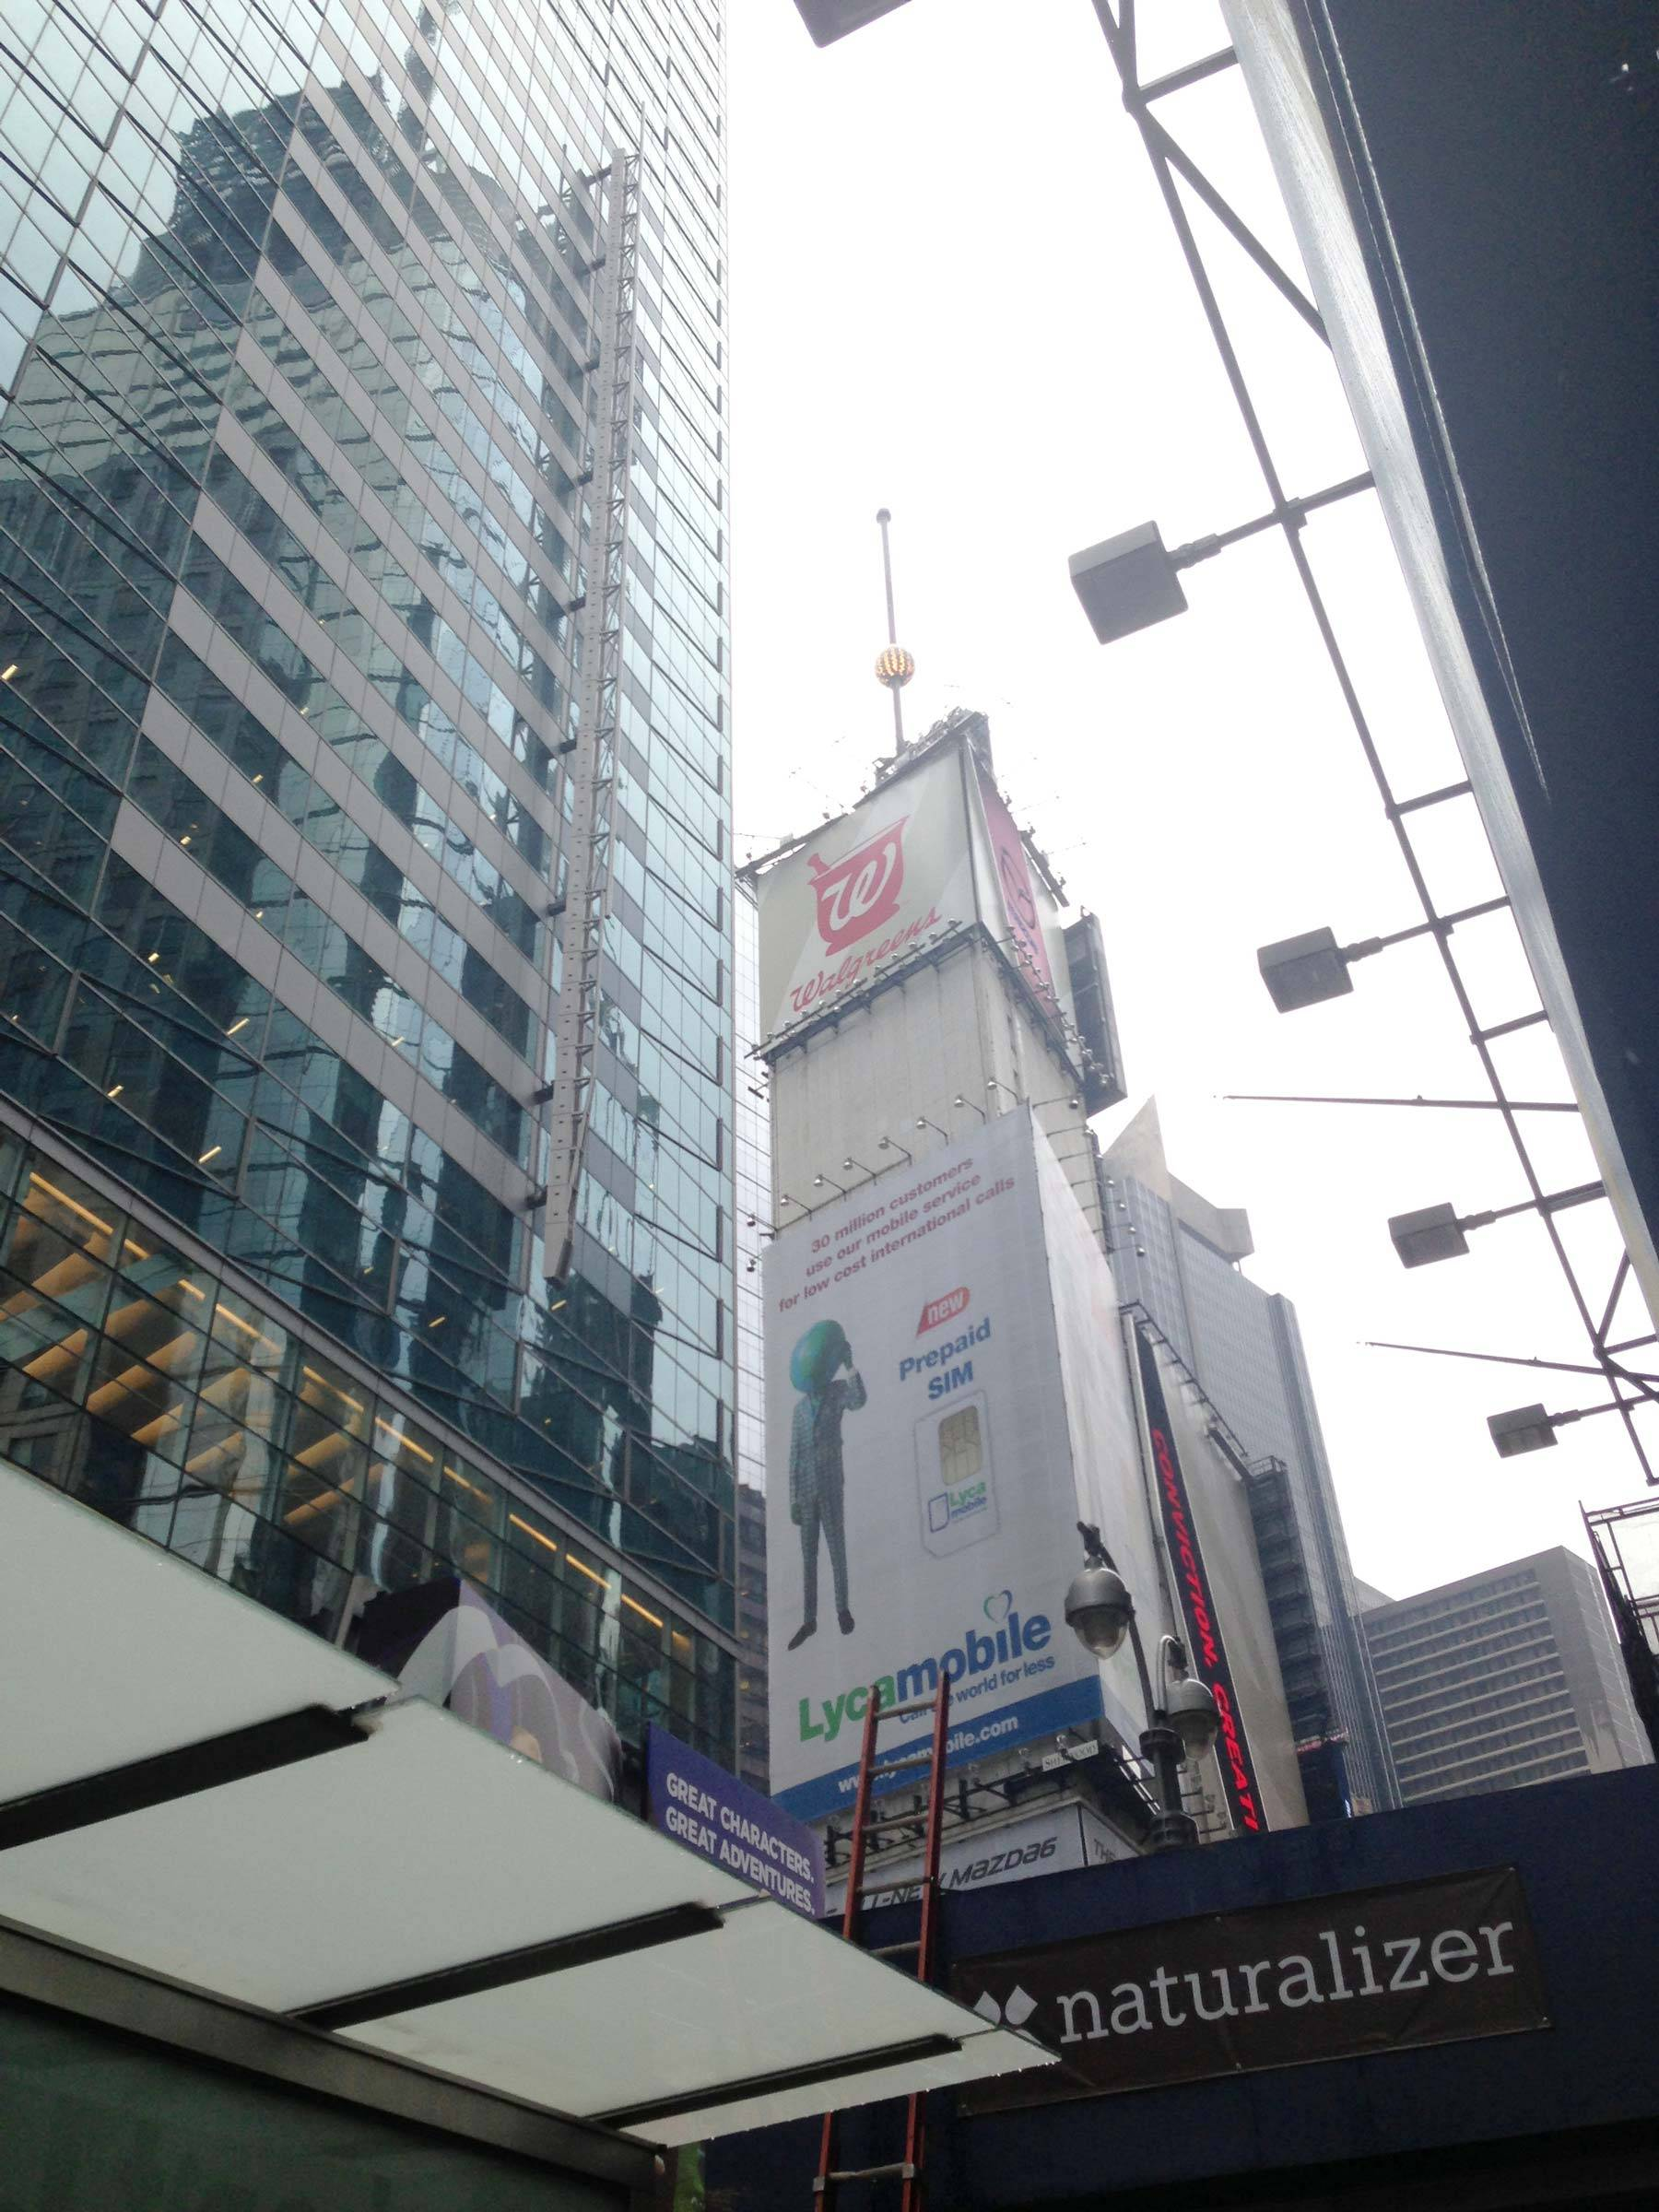 Tall buildings and adverts